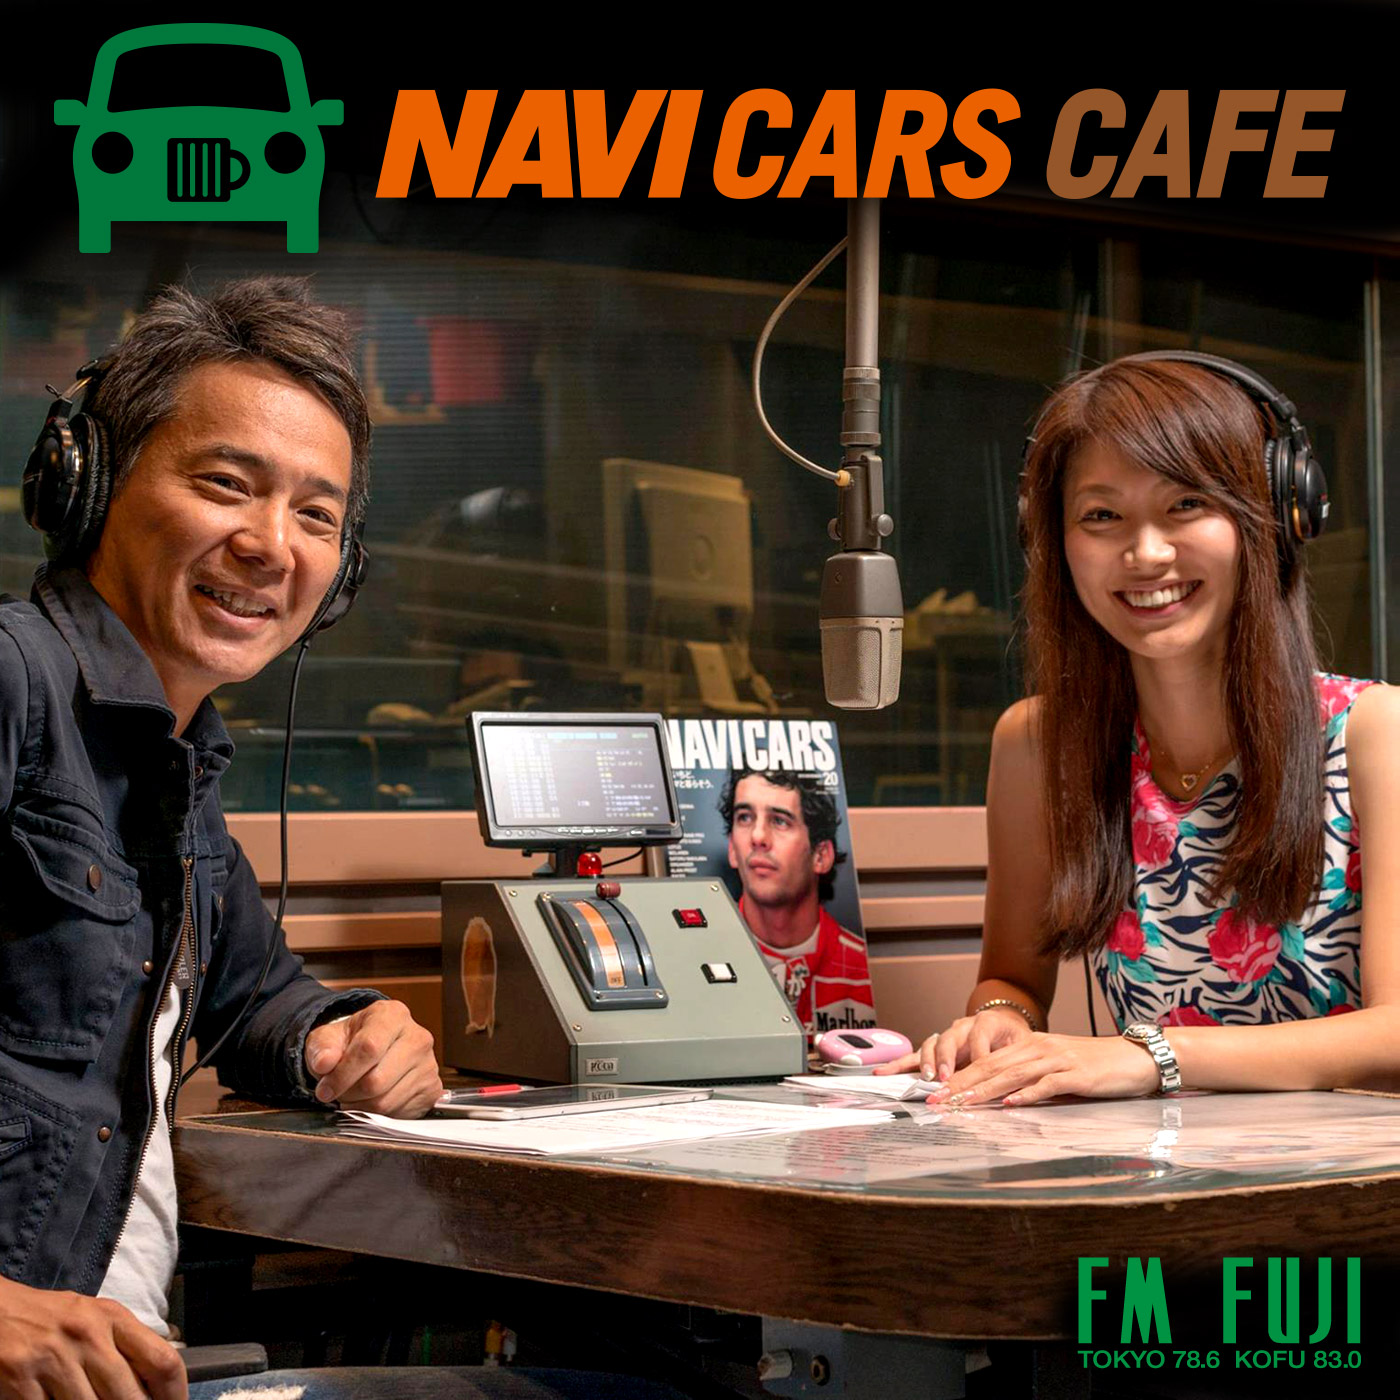 Re.Ra.Ku presents NAVI CARS CAFE